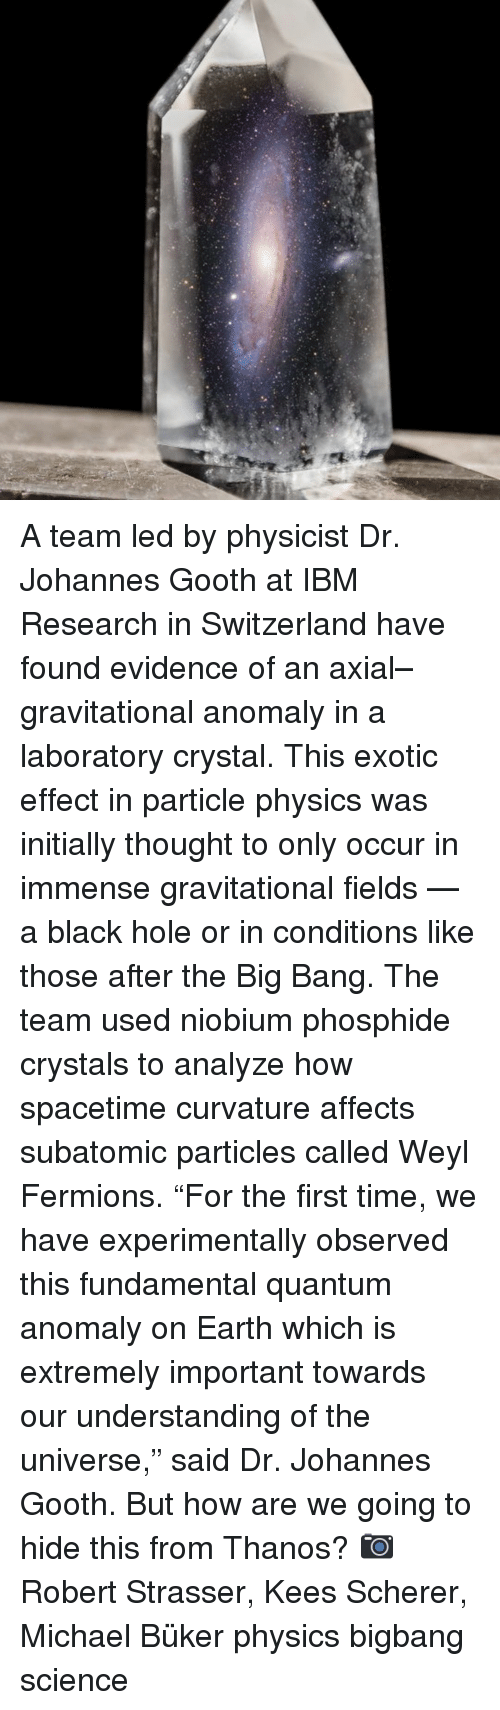 "Memes, Black, and Earth: A team led by physicist Dr. Johannes Gooth at IBM Research in Switzerland have found evidence of an axial–gravitational anomaly in a laboratory crystal. This exotic effect in particle physics was initially thought to only occur in immense gravitational fields — a black hole or in conditions like those after the Big Bang. The team used niobium phosphide crystals to analyze how spacetime curvature affects subatomic particles called Weyl Fermions. ""For the first time, we have experimentally observed this fundamental quantum anomaly on Earth which is extremely important towards our understanding of the universe,"" said Dr. Johannes Gooth. But how are we going to hide this from Thanos? 📷 Robert Strasser, Kees Scherer, Michael Büker physics bigbang science"